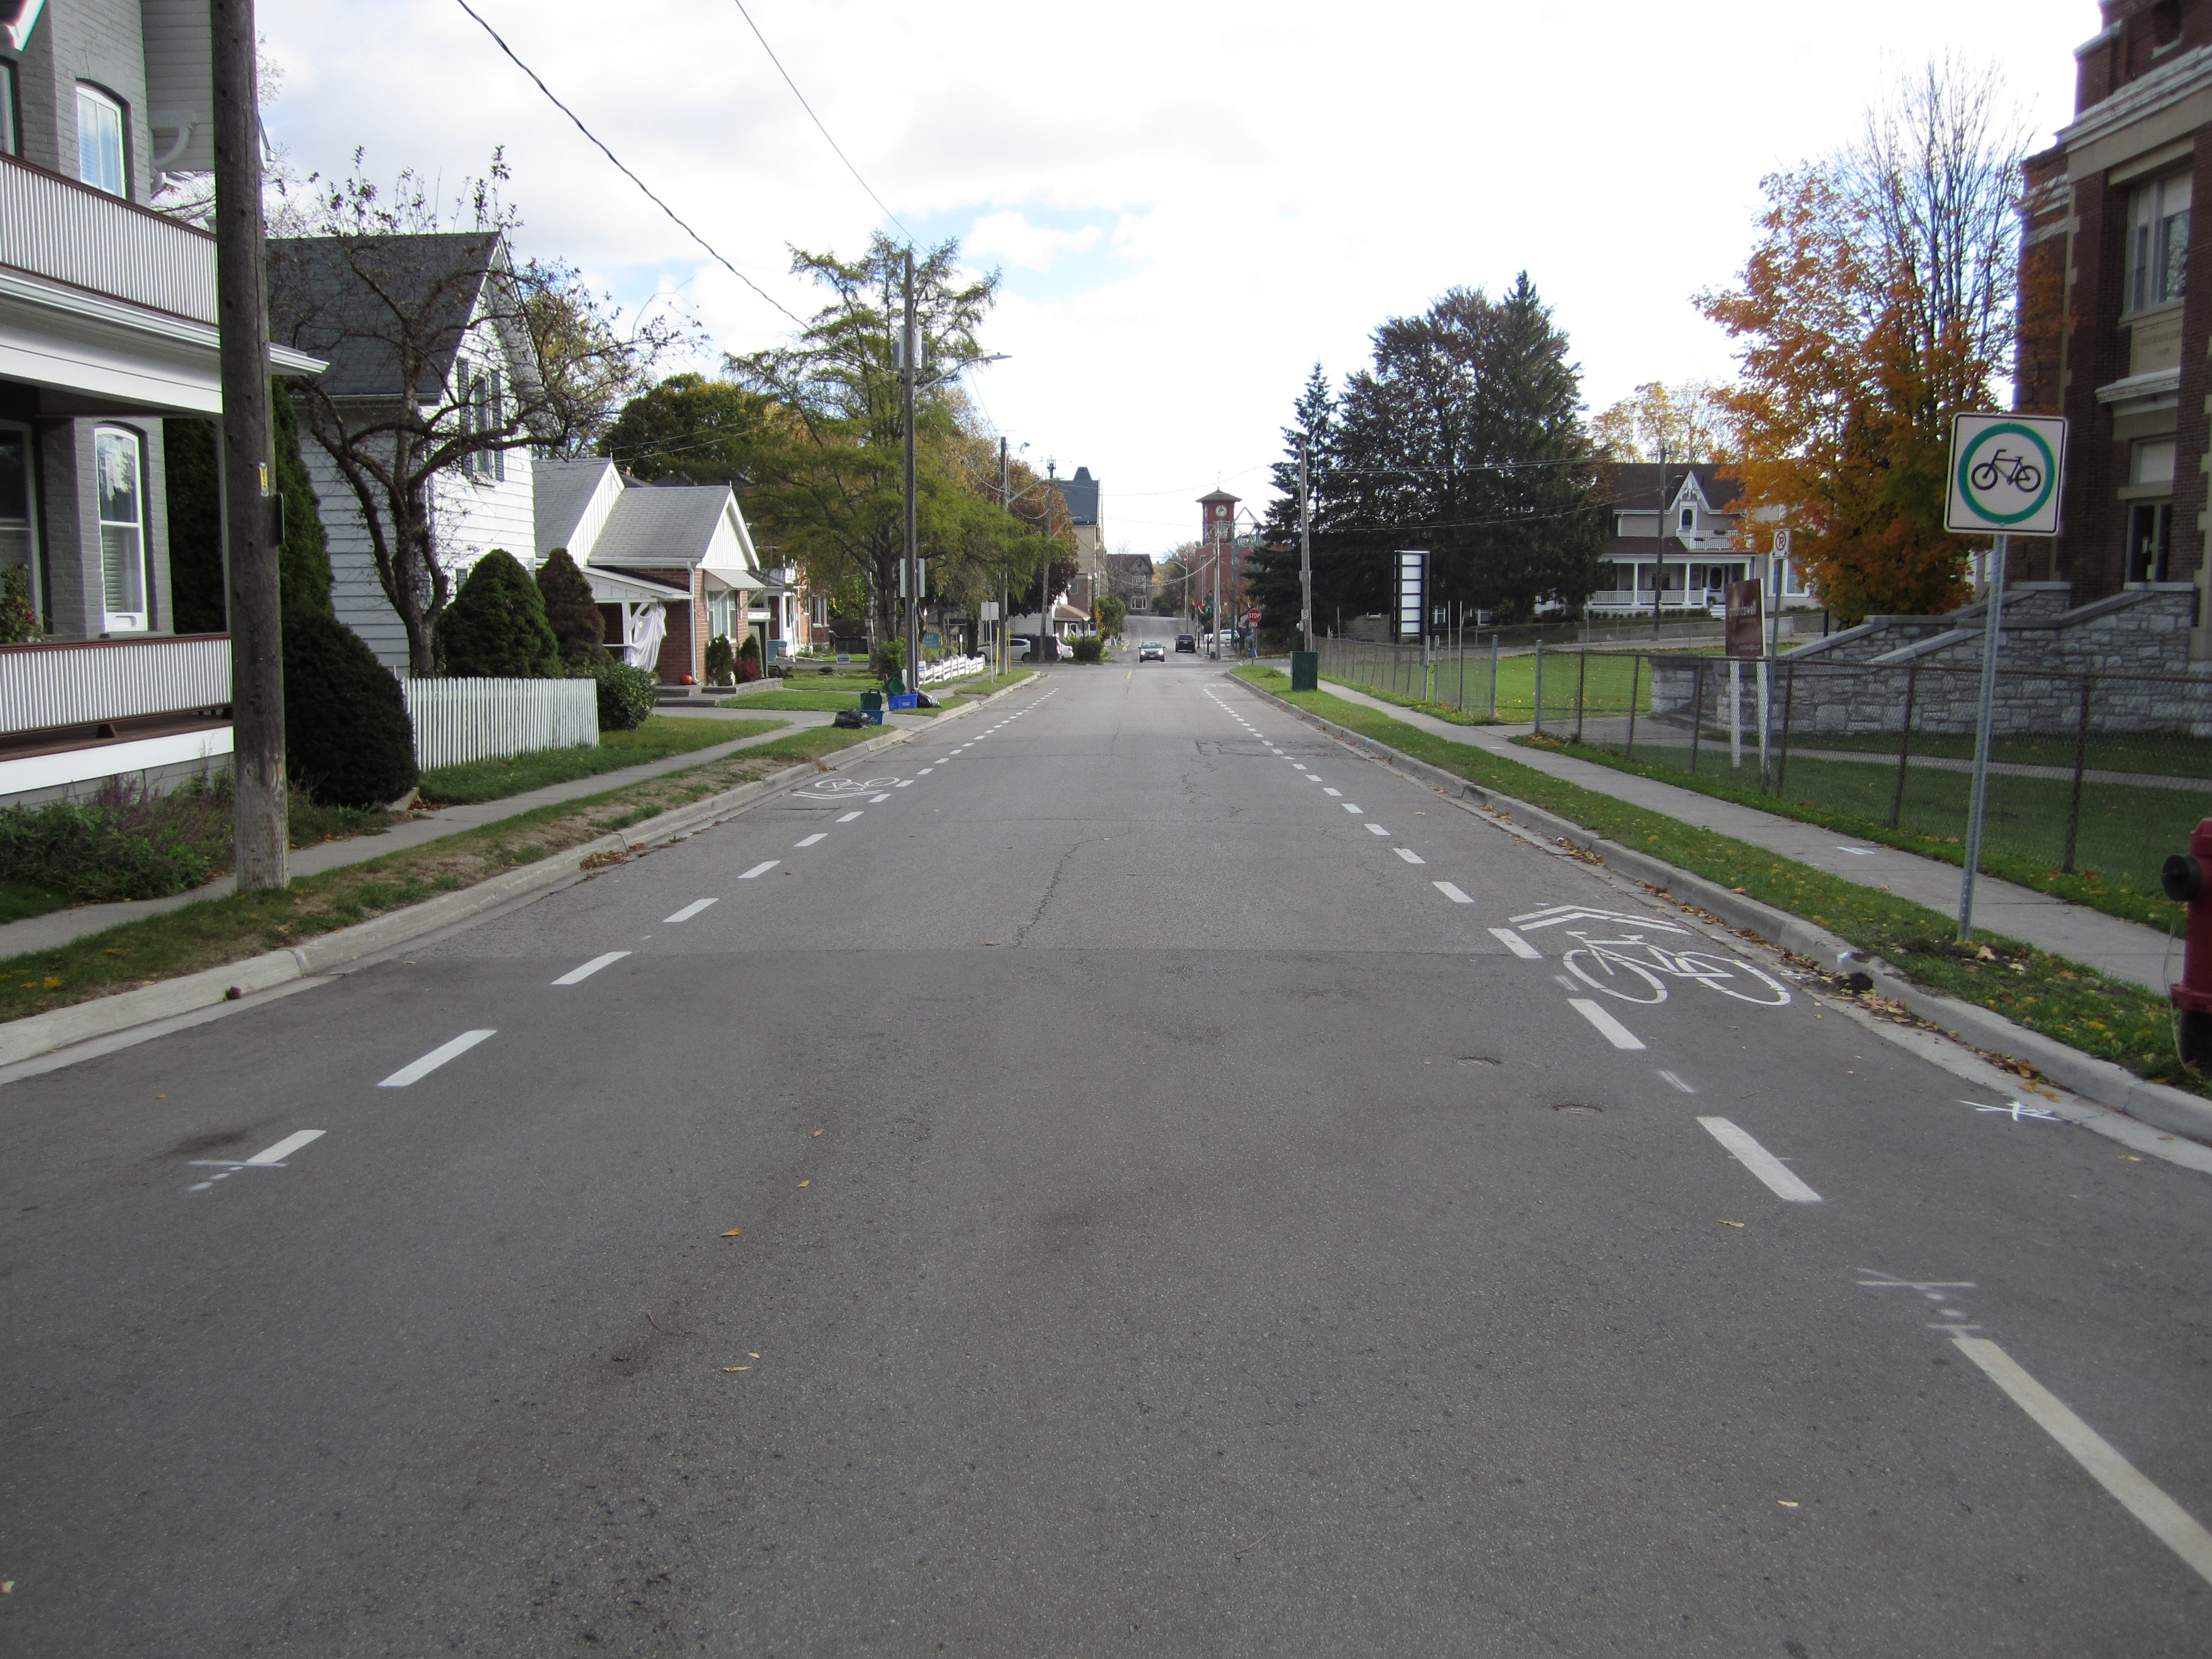 advisory bike lanes on a road in Newmarket